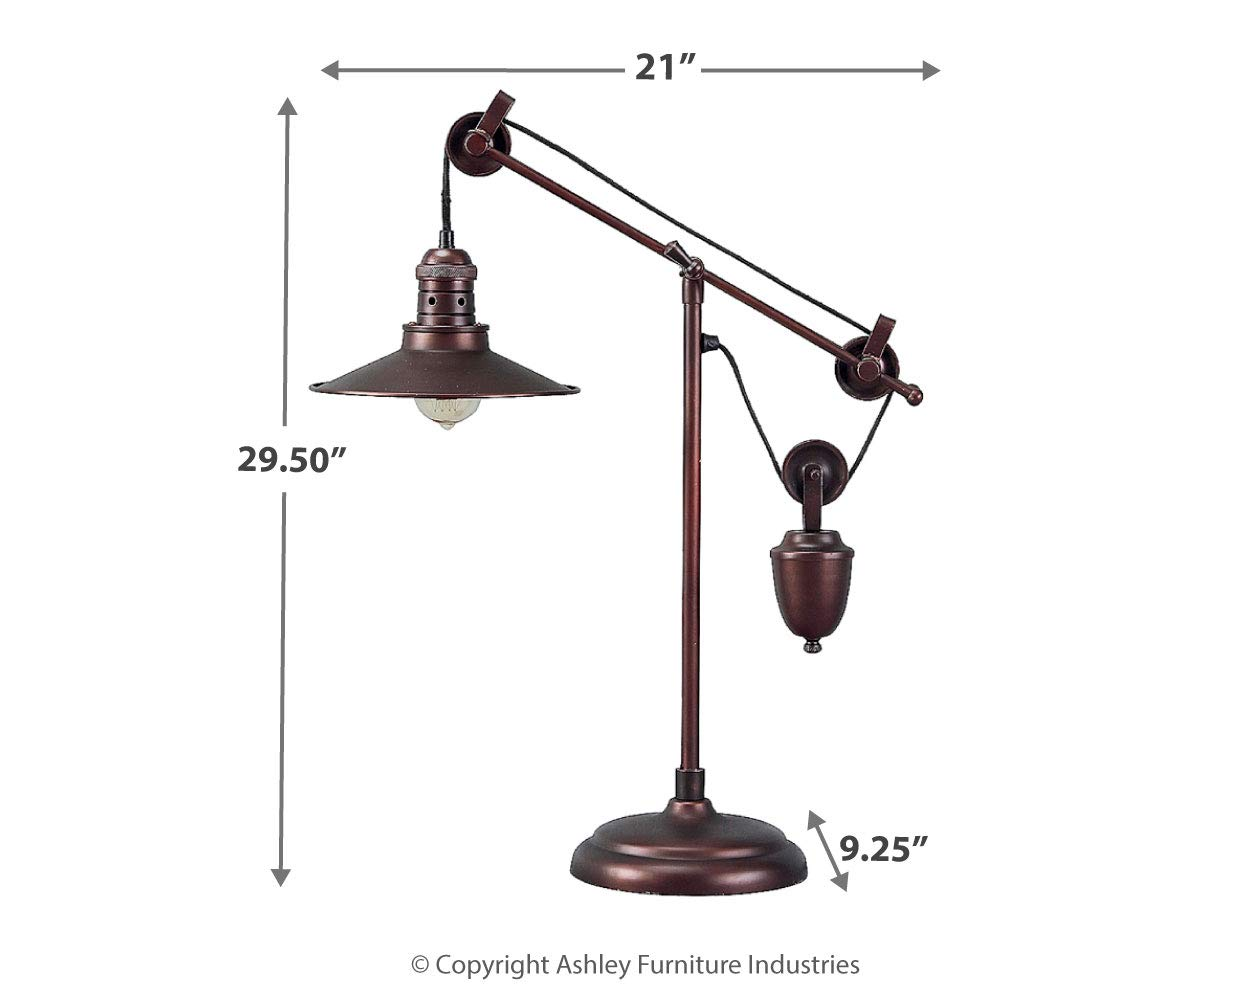 Ashley Furniture Signature Design - Kylen Desk Lamp with Metal Shade with in-Line Switch - Industrial - Bronze Finish by Signature Design by Ashley (Image #8)